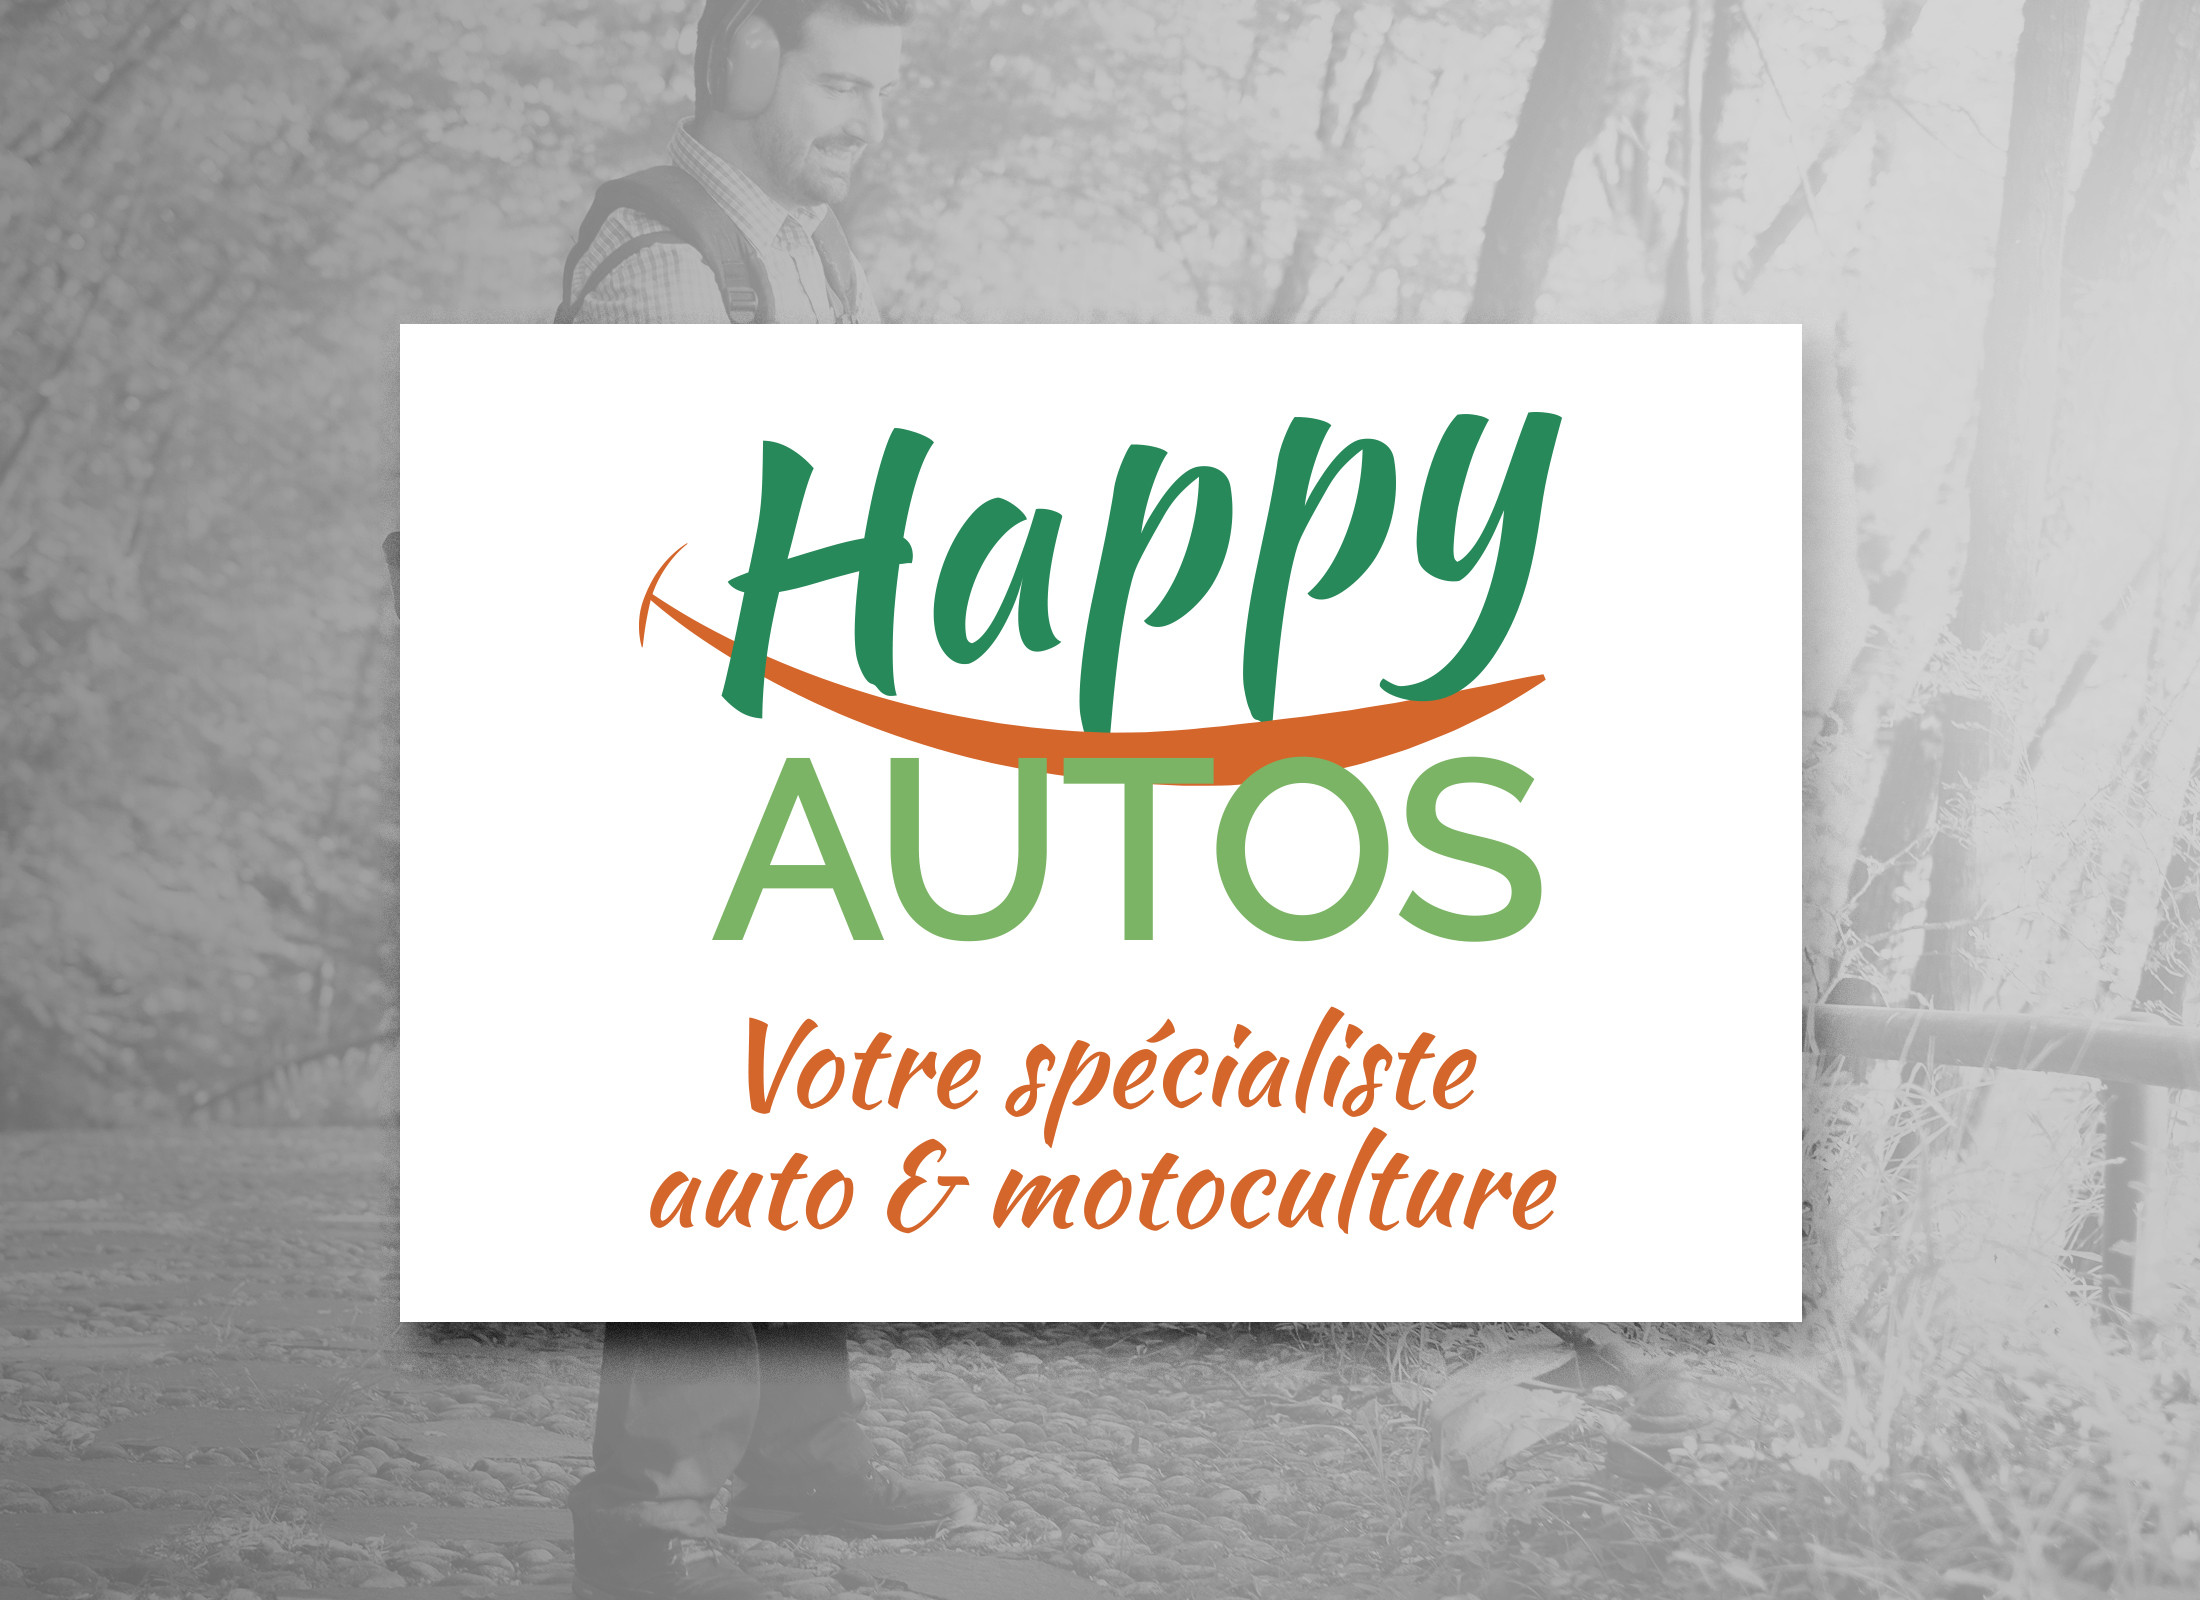 HAPPY AUTOS